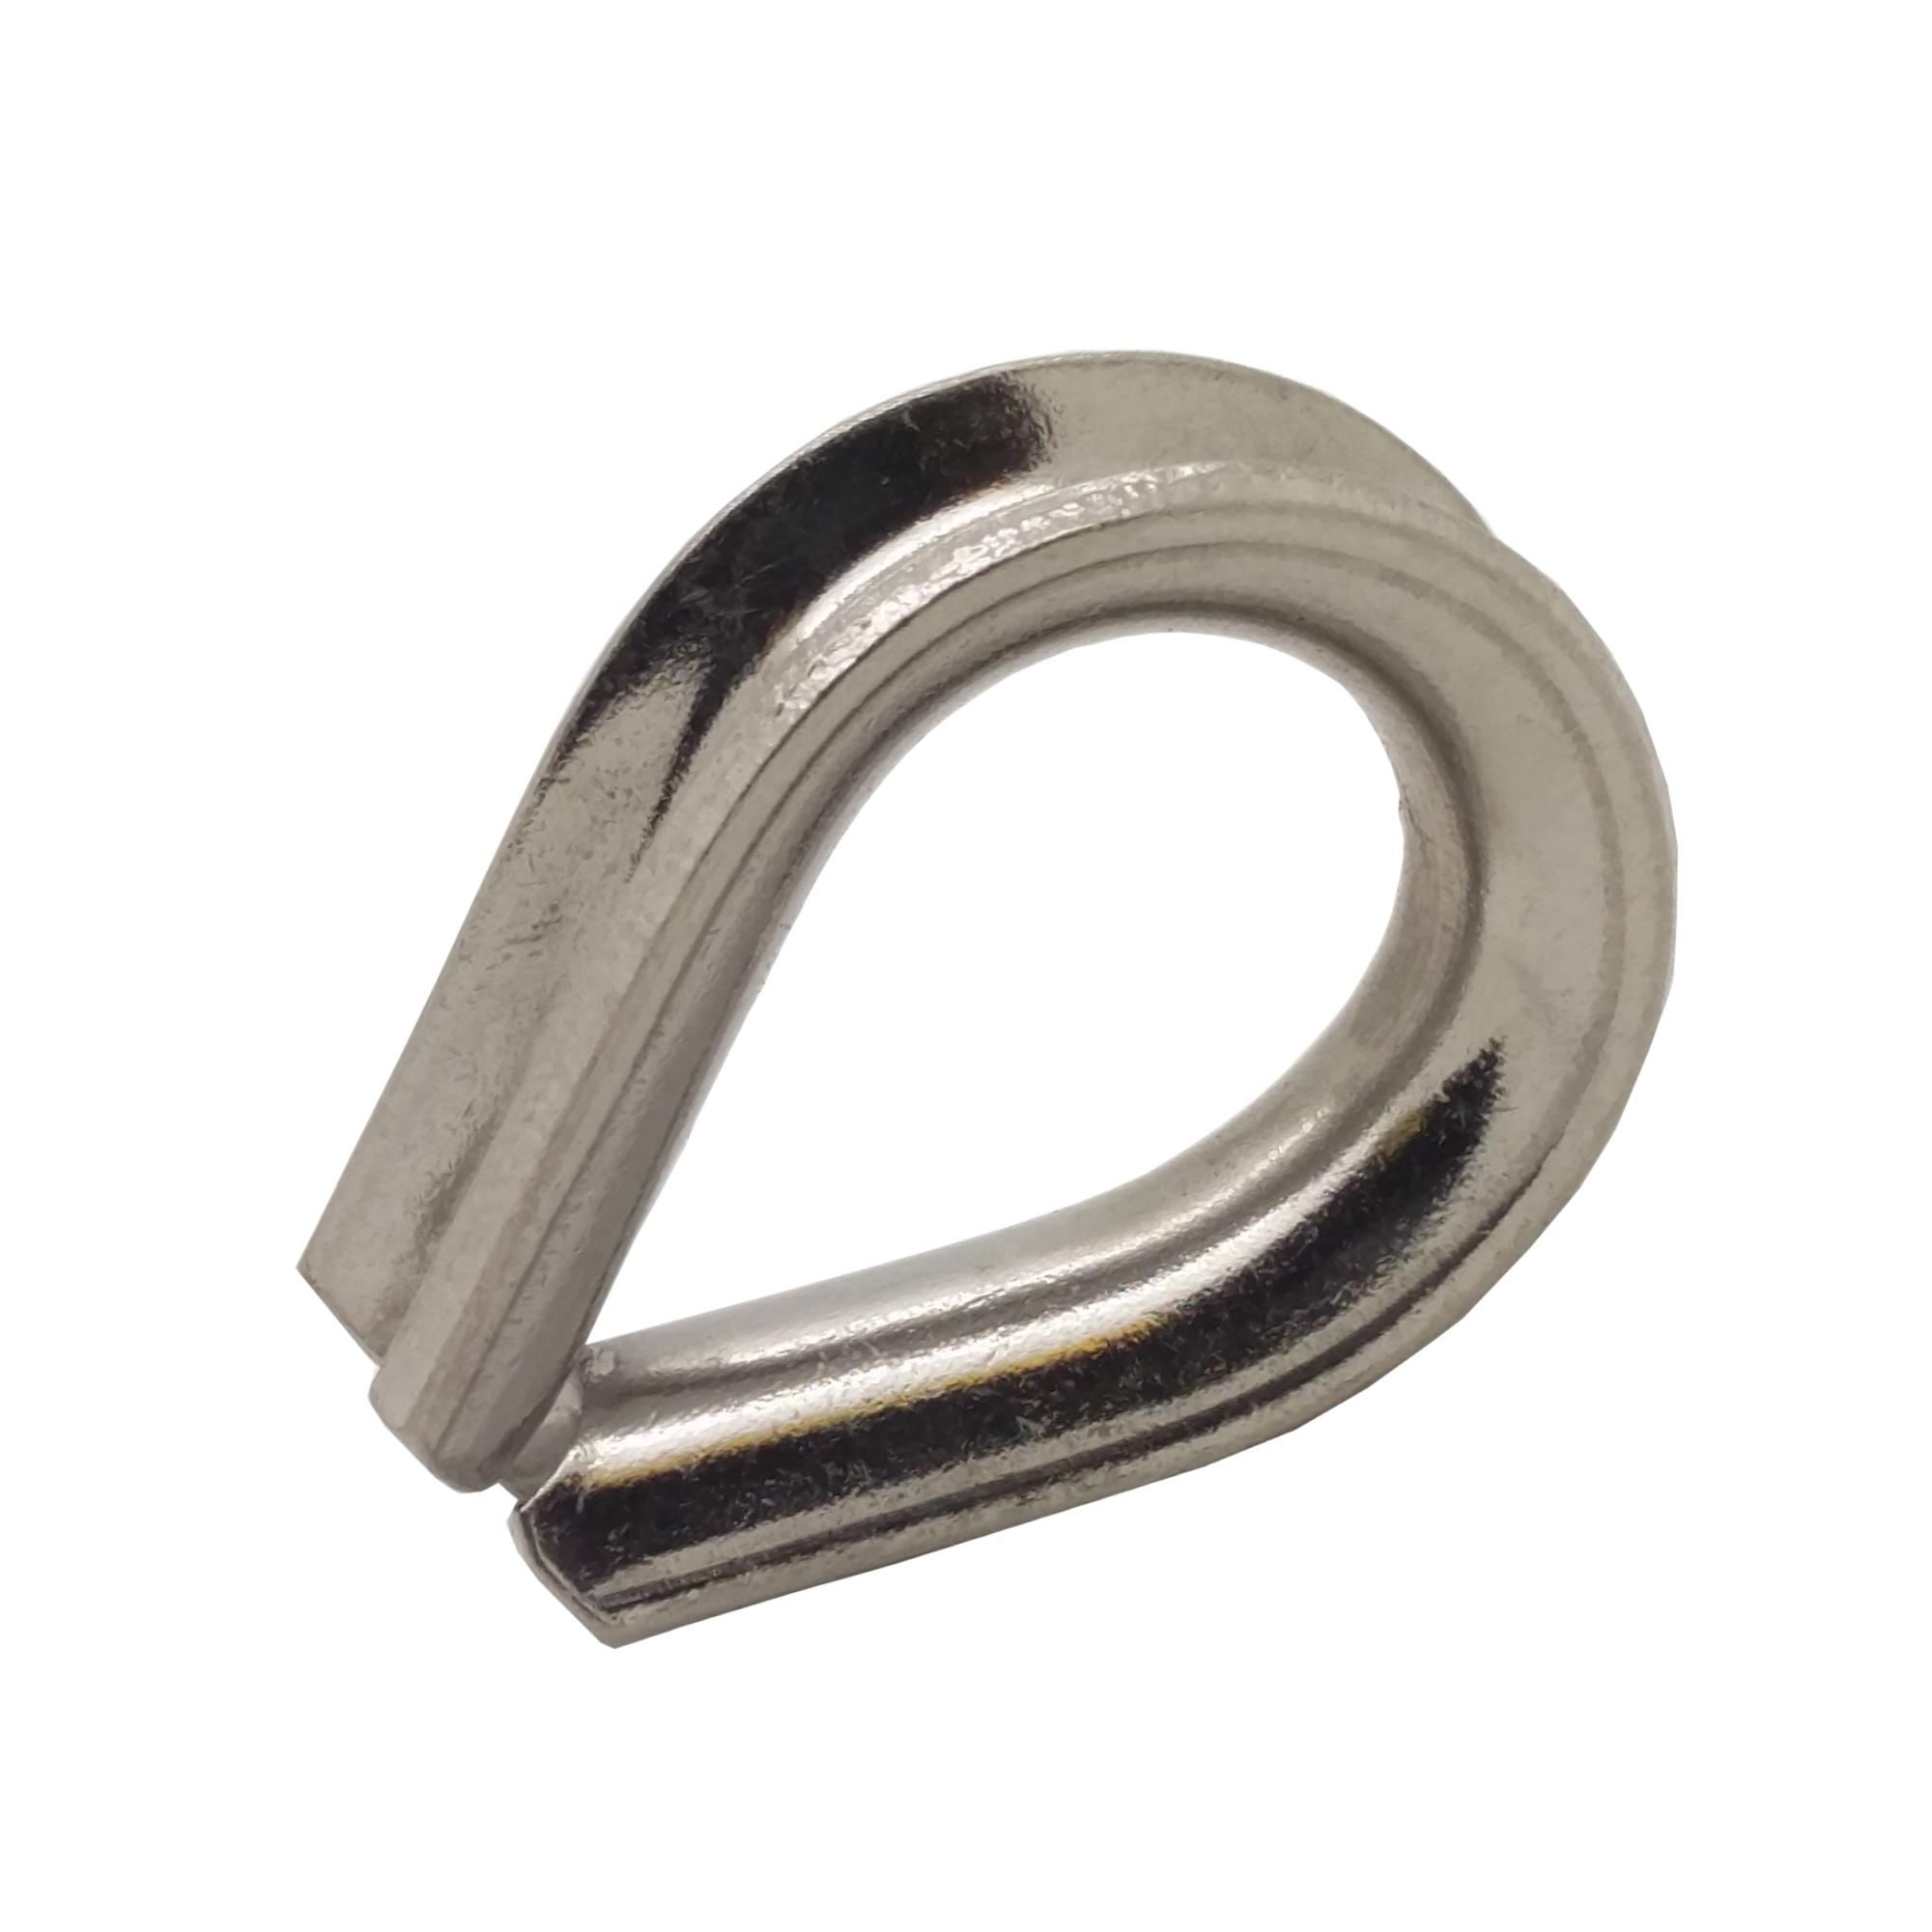 6mm A4-AISI 316 Stainless Steel Wire Rope Thimble Heavy Gauge ...